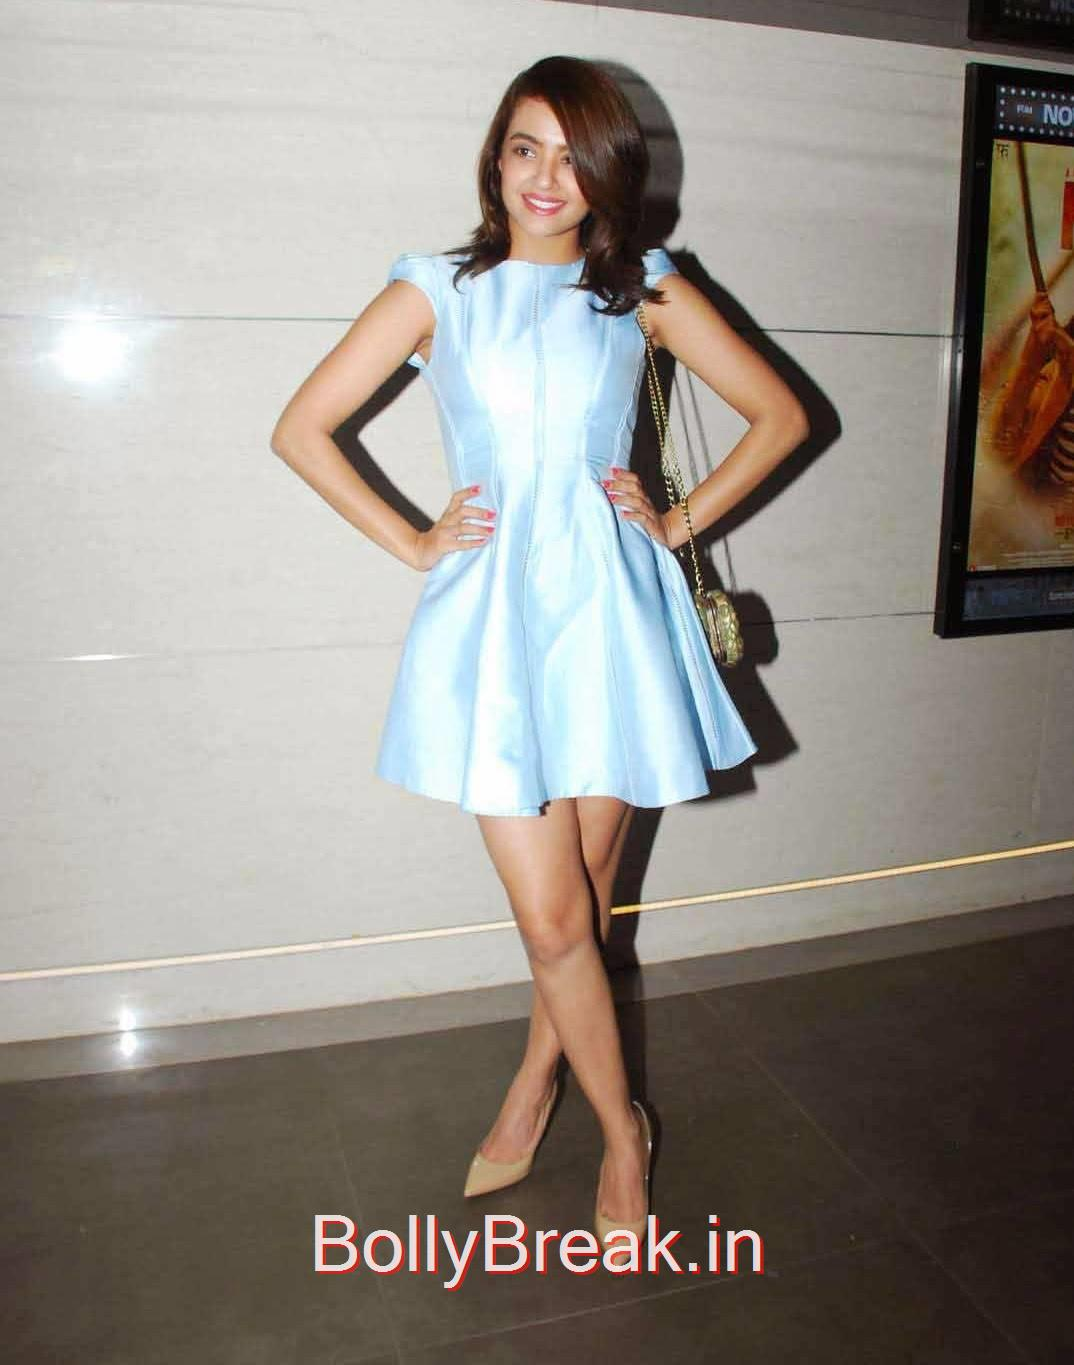 Surveen Chawla Pictures, Surveen Chawla Hot Pics from LFW Summer Resort 2015